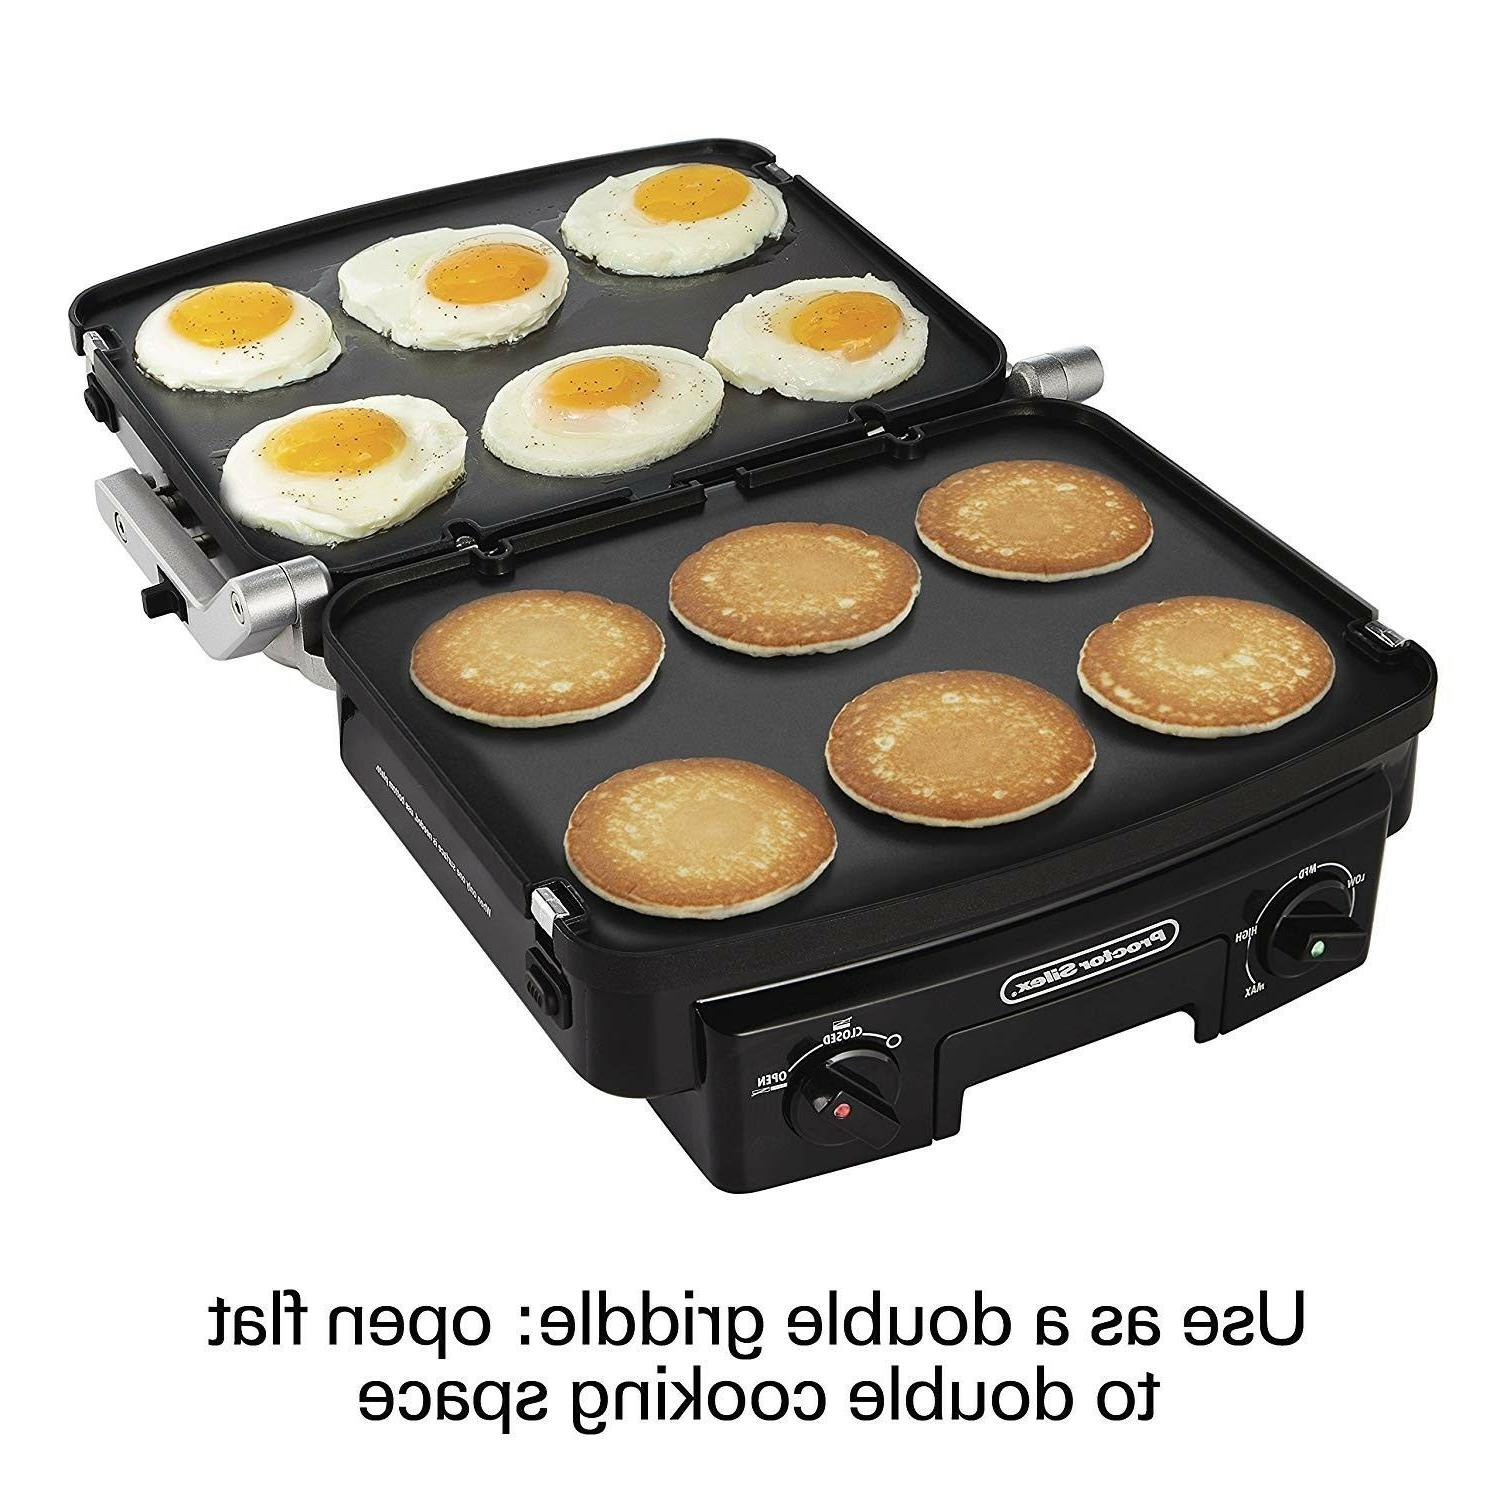 5 in 1 indoor countertop grill griddle